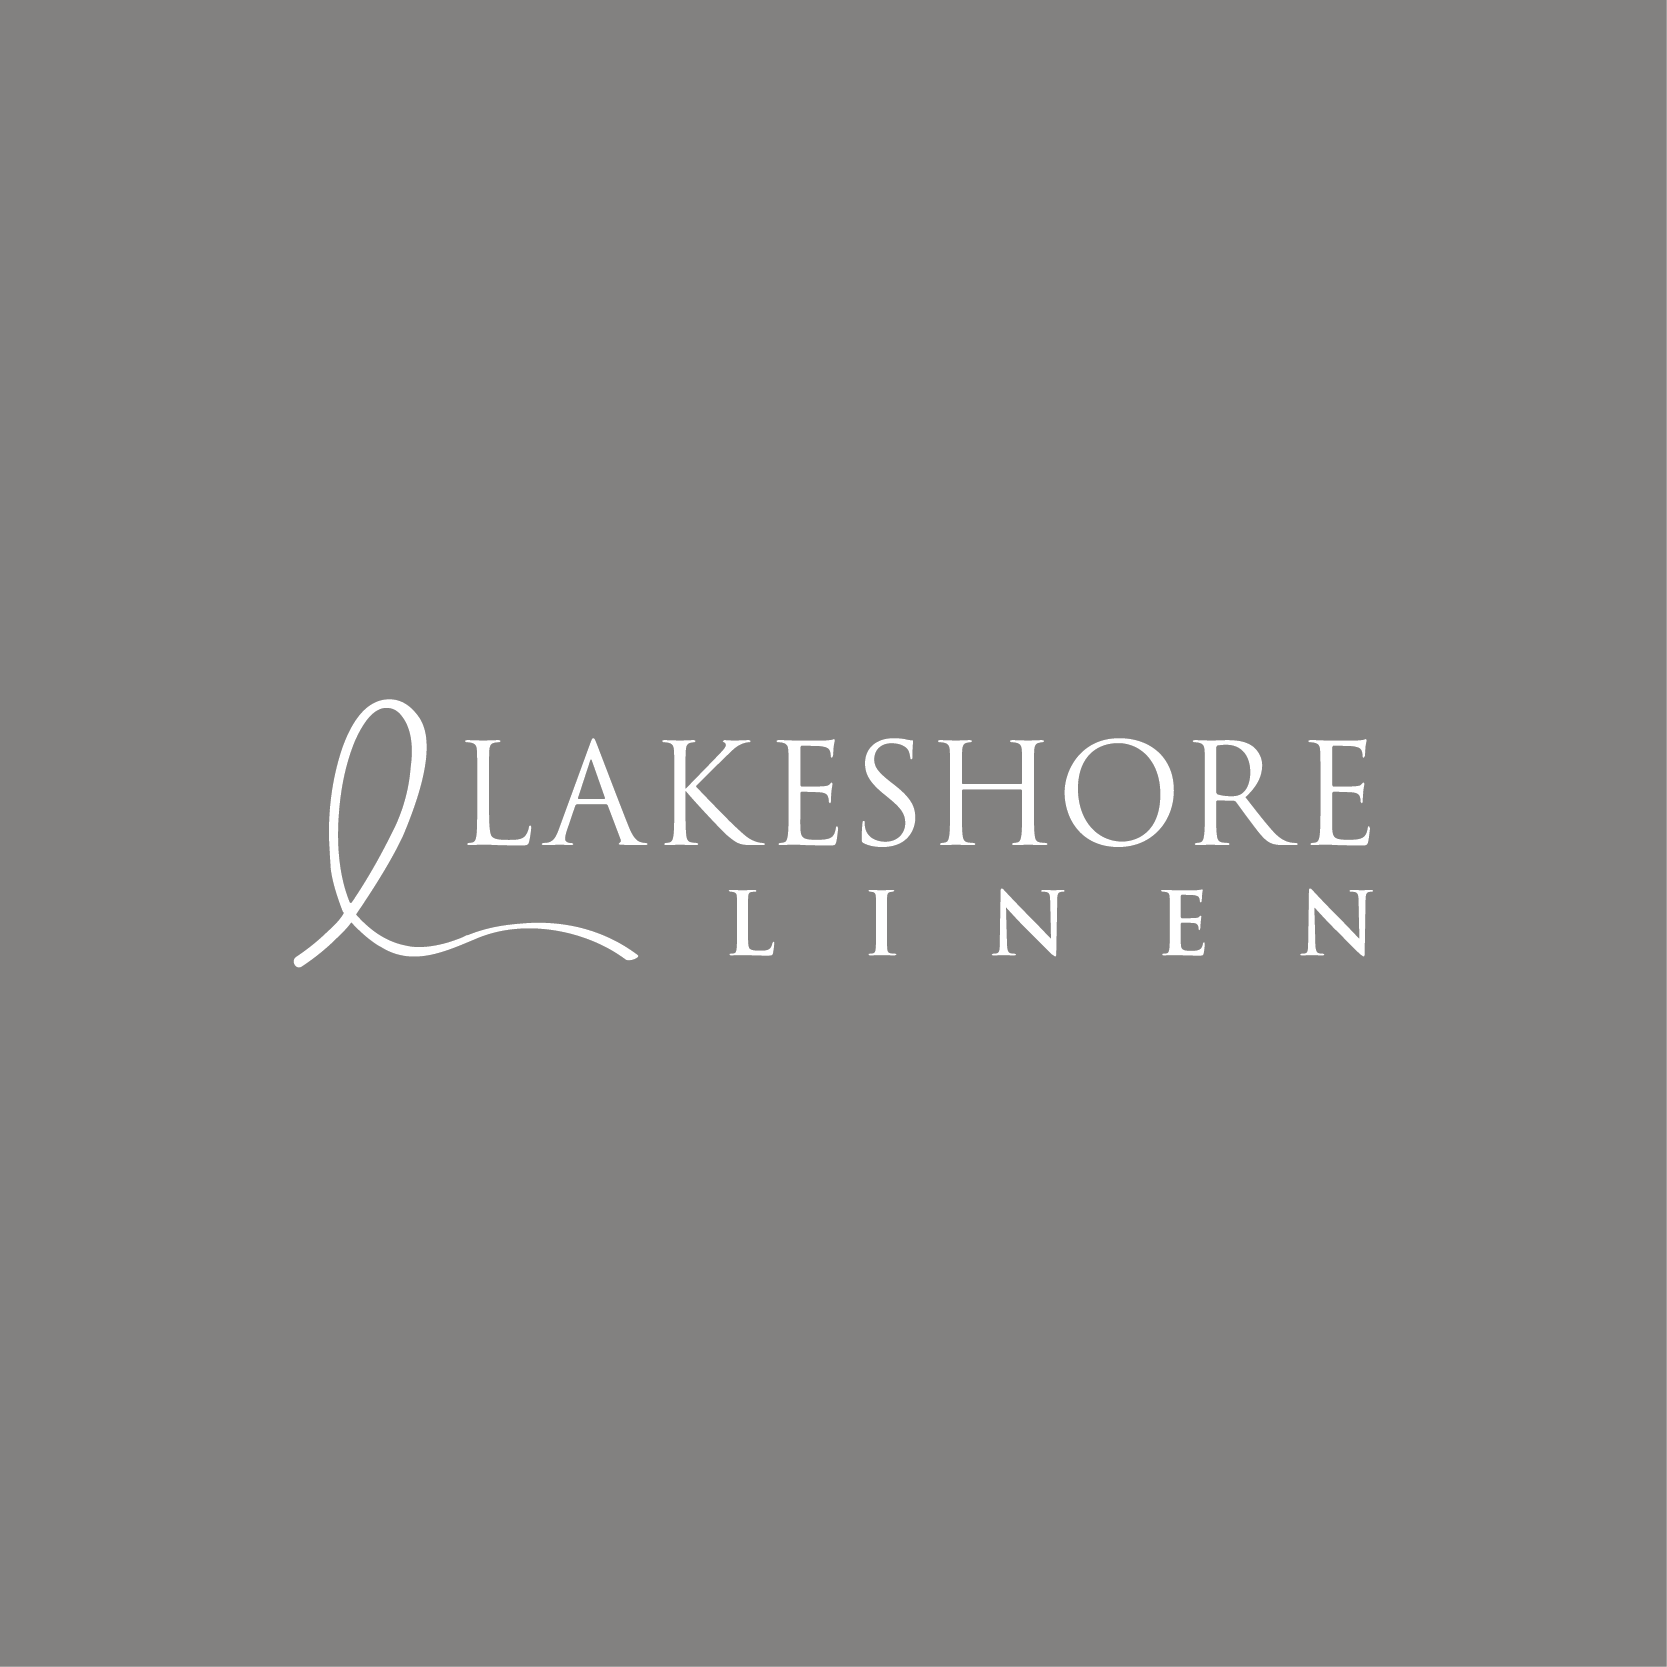 Lakeshore Linen needs a logo to relay simple, natural, comfortable, chic.